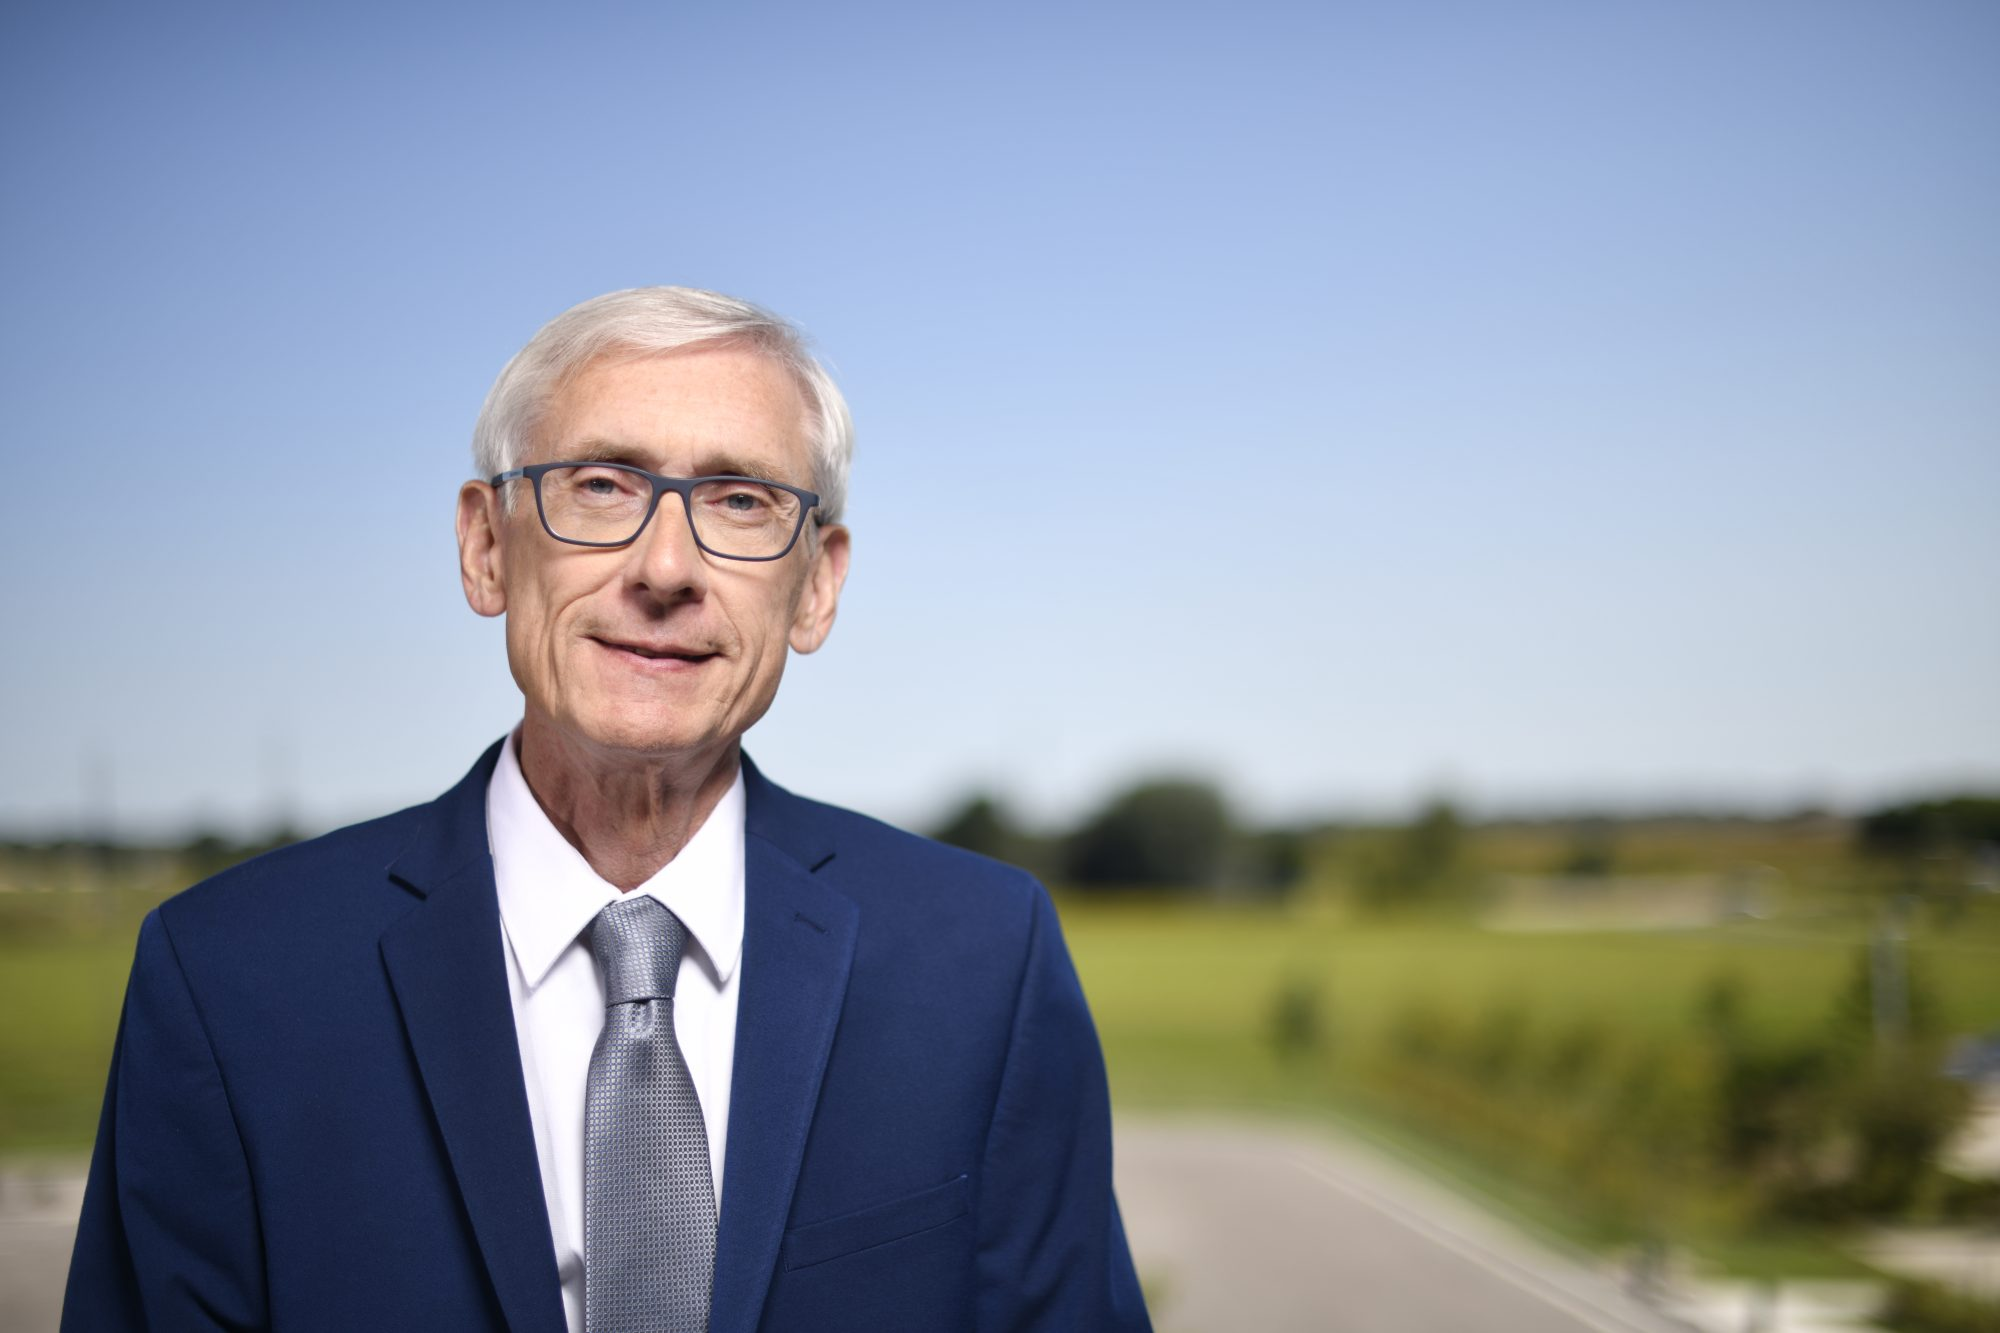 Gov. Evers Announces Nexus Pharmaceuticals to Build Sterile Injectable Manufacturing Facility in Pleasant Prairie